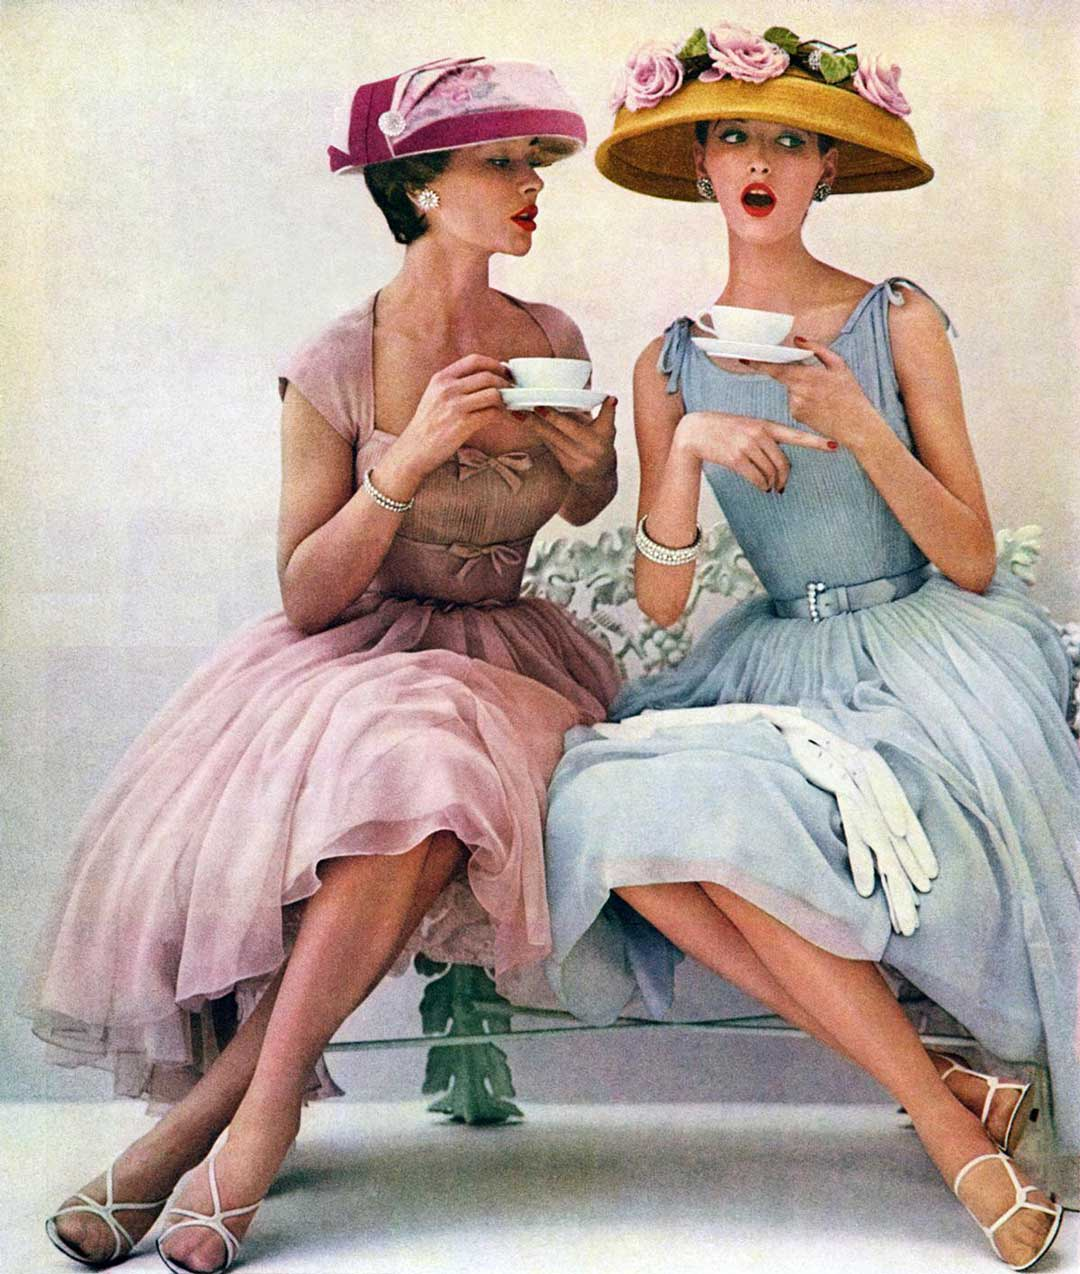 tea secrets, secrets, secret, ladies, tea, tea drinking